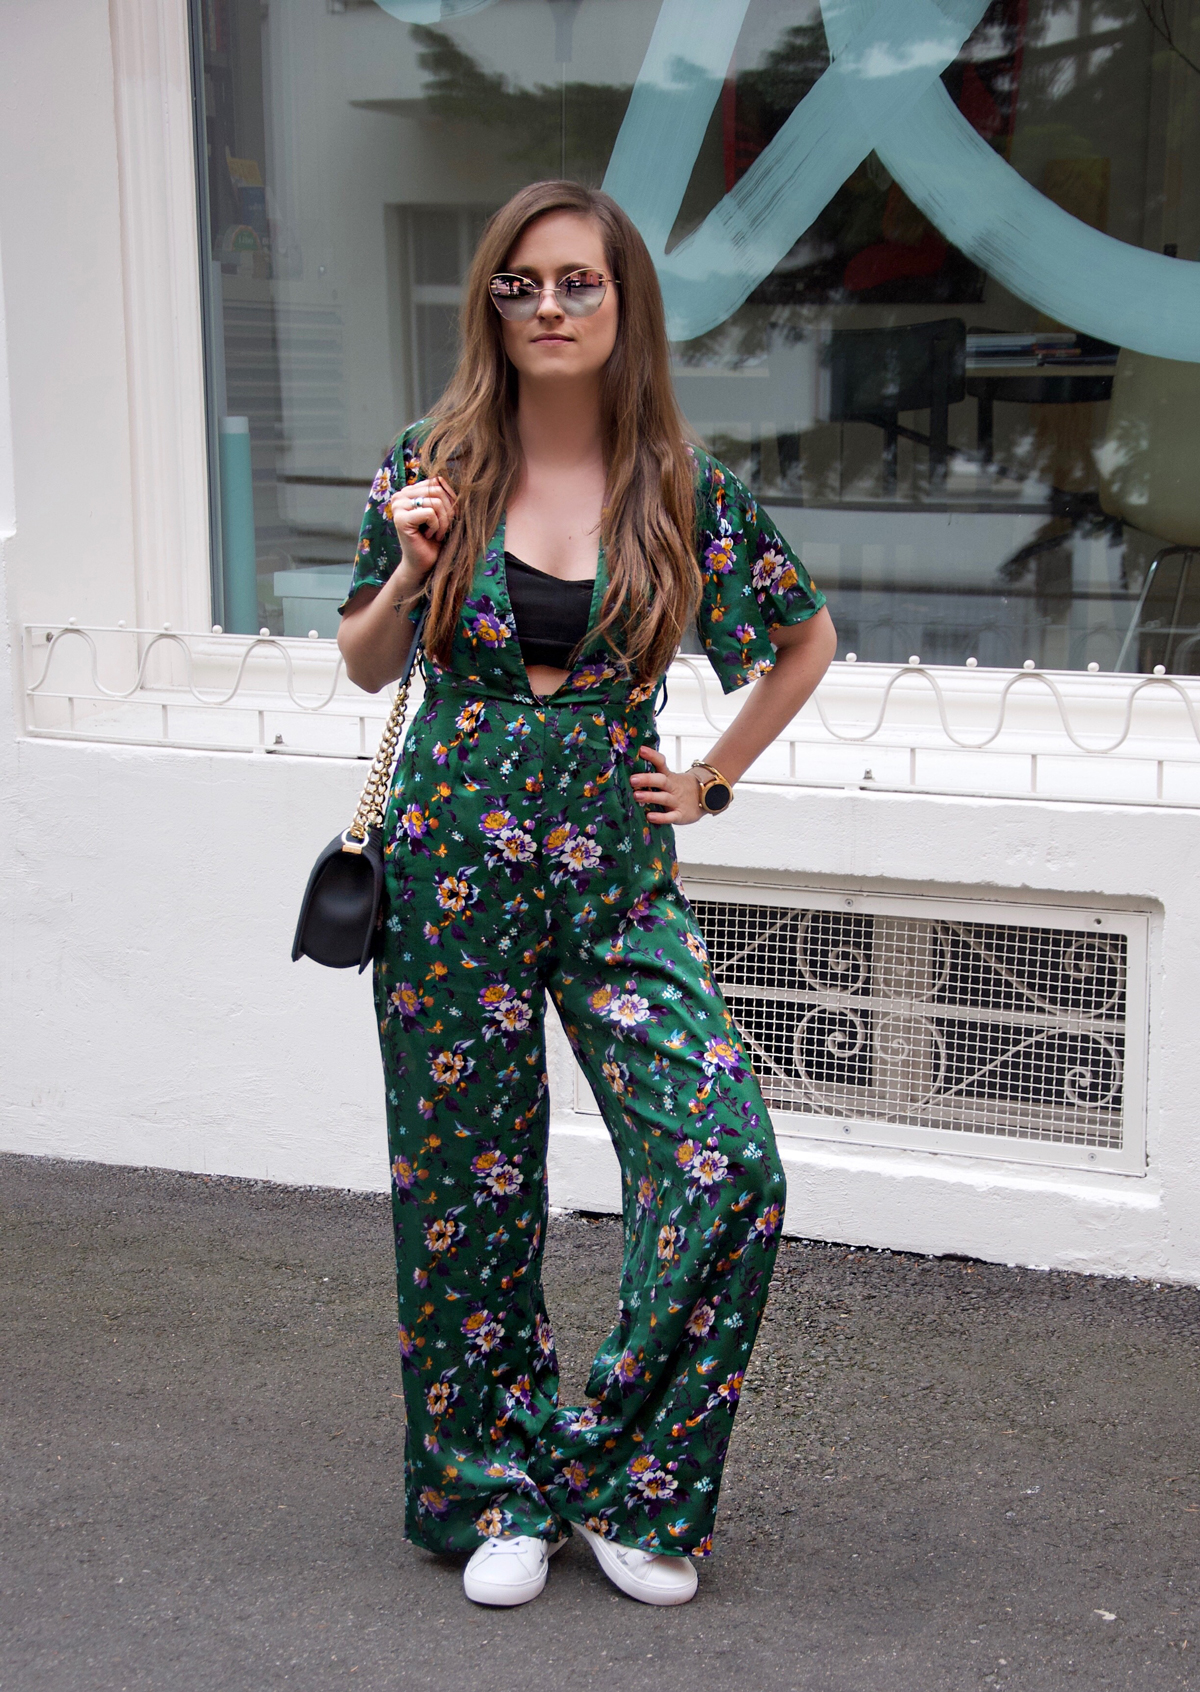 Strawberries 'n' Champagne, a fashion Blog by Andrea Steiner based in Lucerne, Switzerland is wearing the perfect sunglasses by Silhouette Eyewear and a colorful jumpsuit.